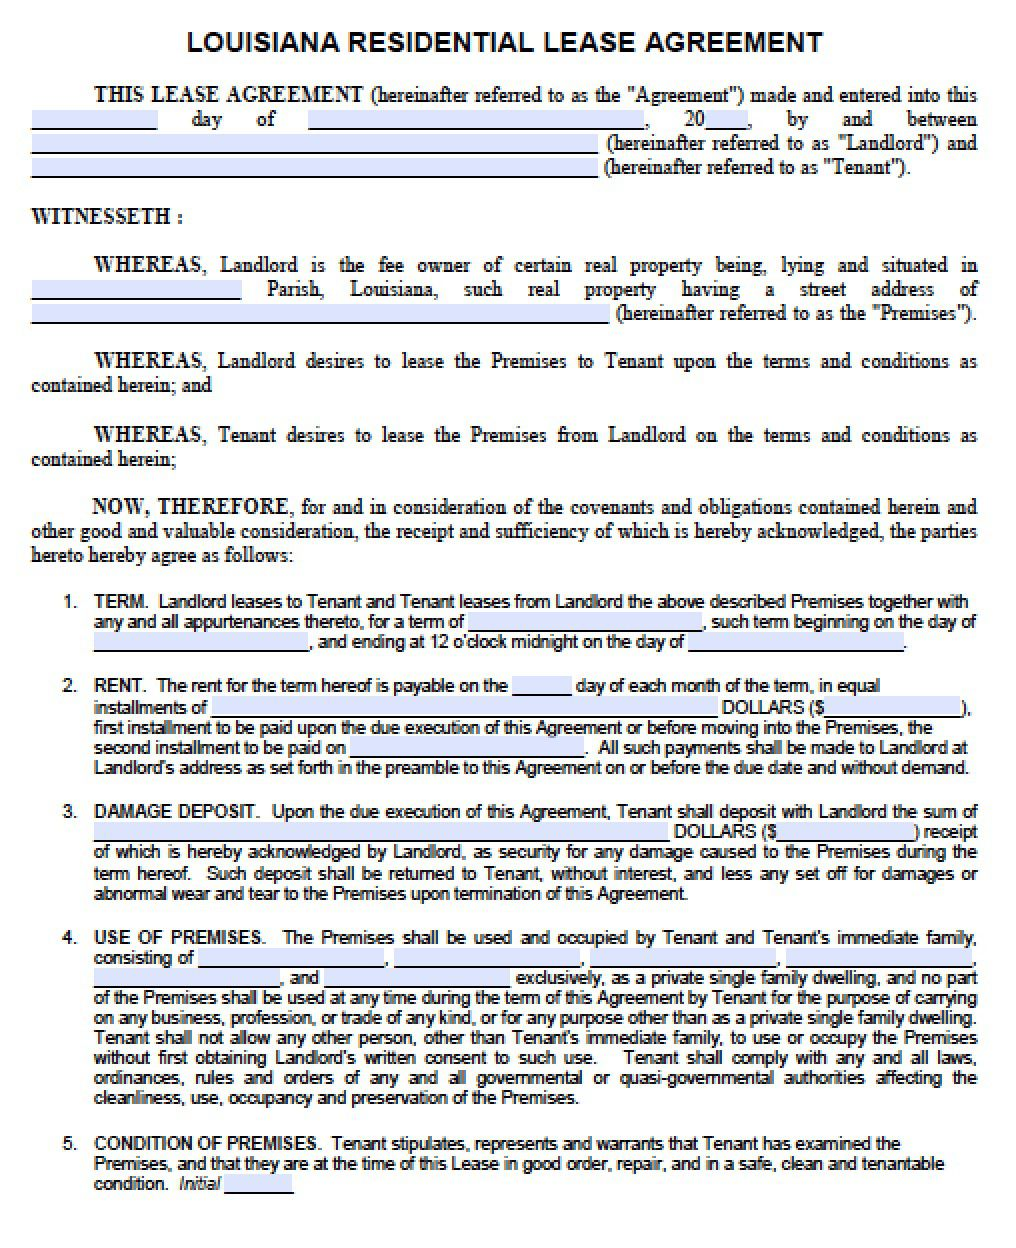 005 Shocking Rent Lease Template Free High Resolution  Room Rental Agreement Form Residential Pdf DownloadFull